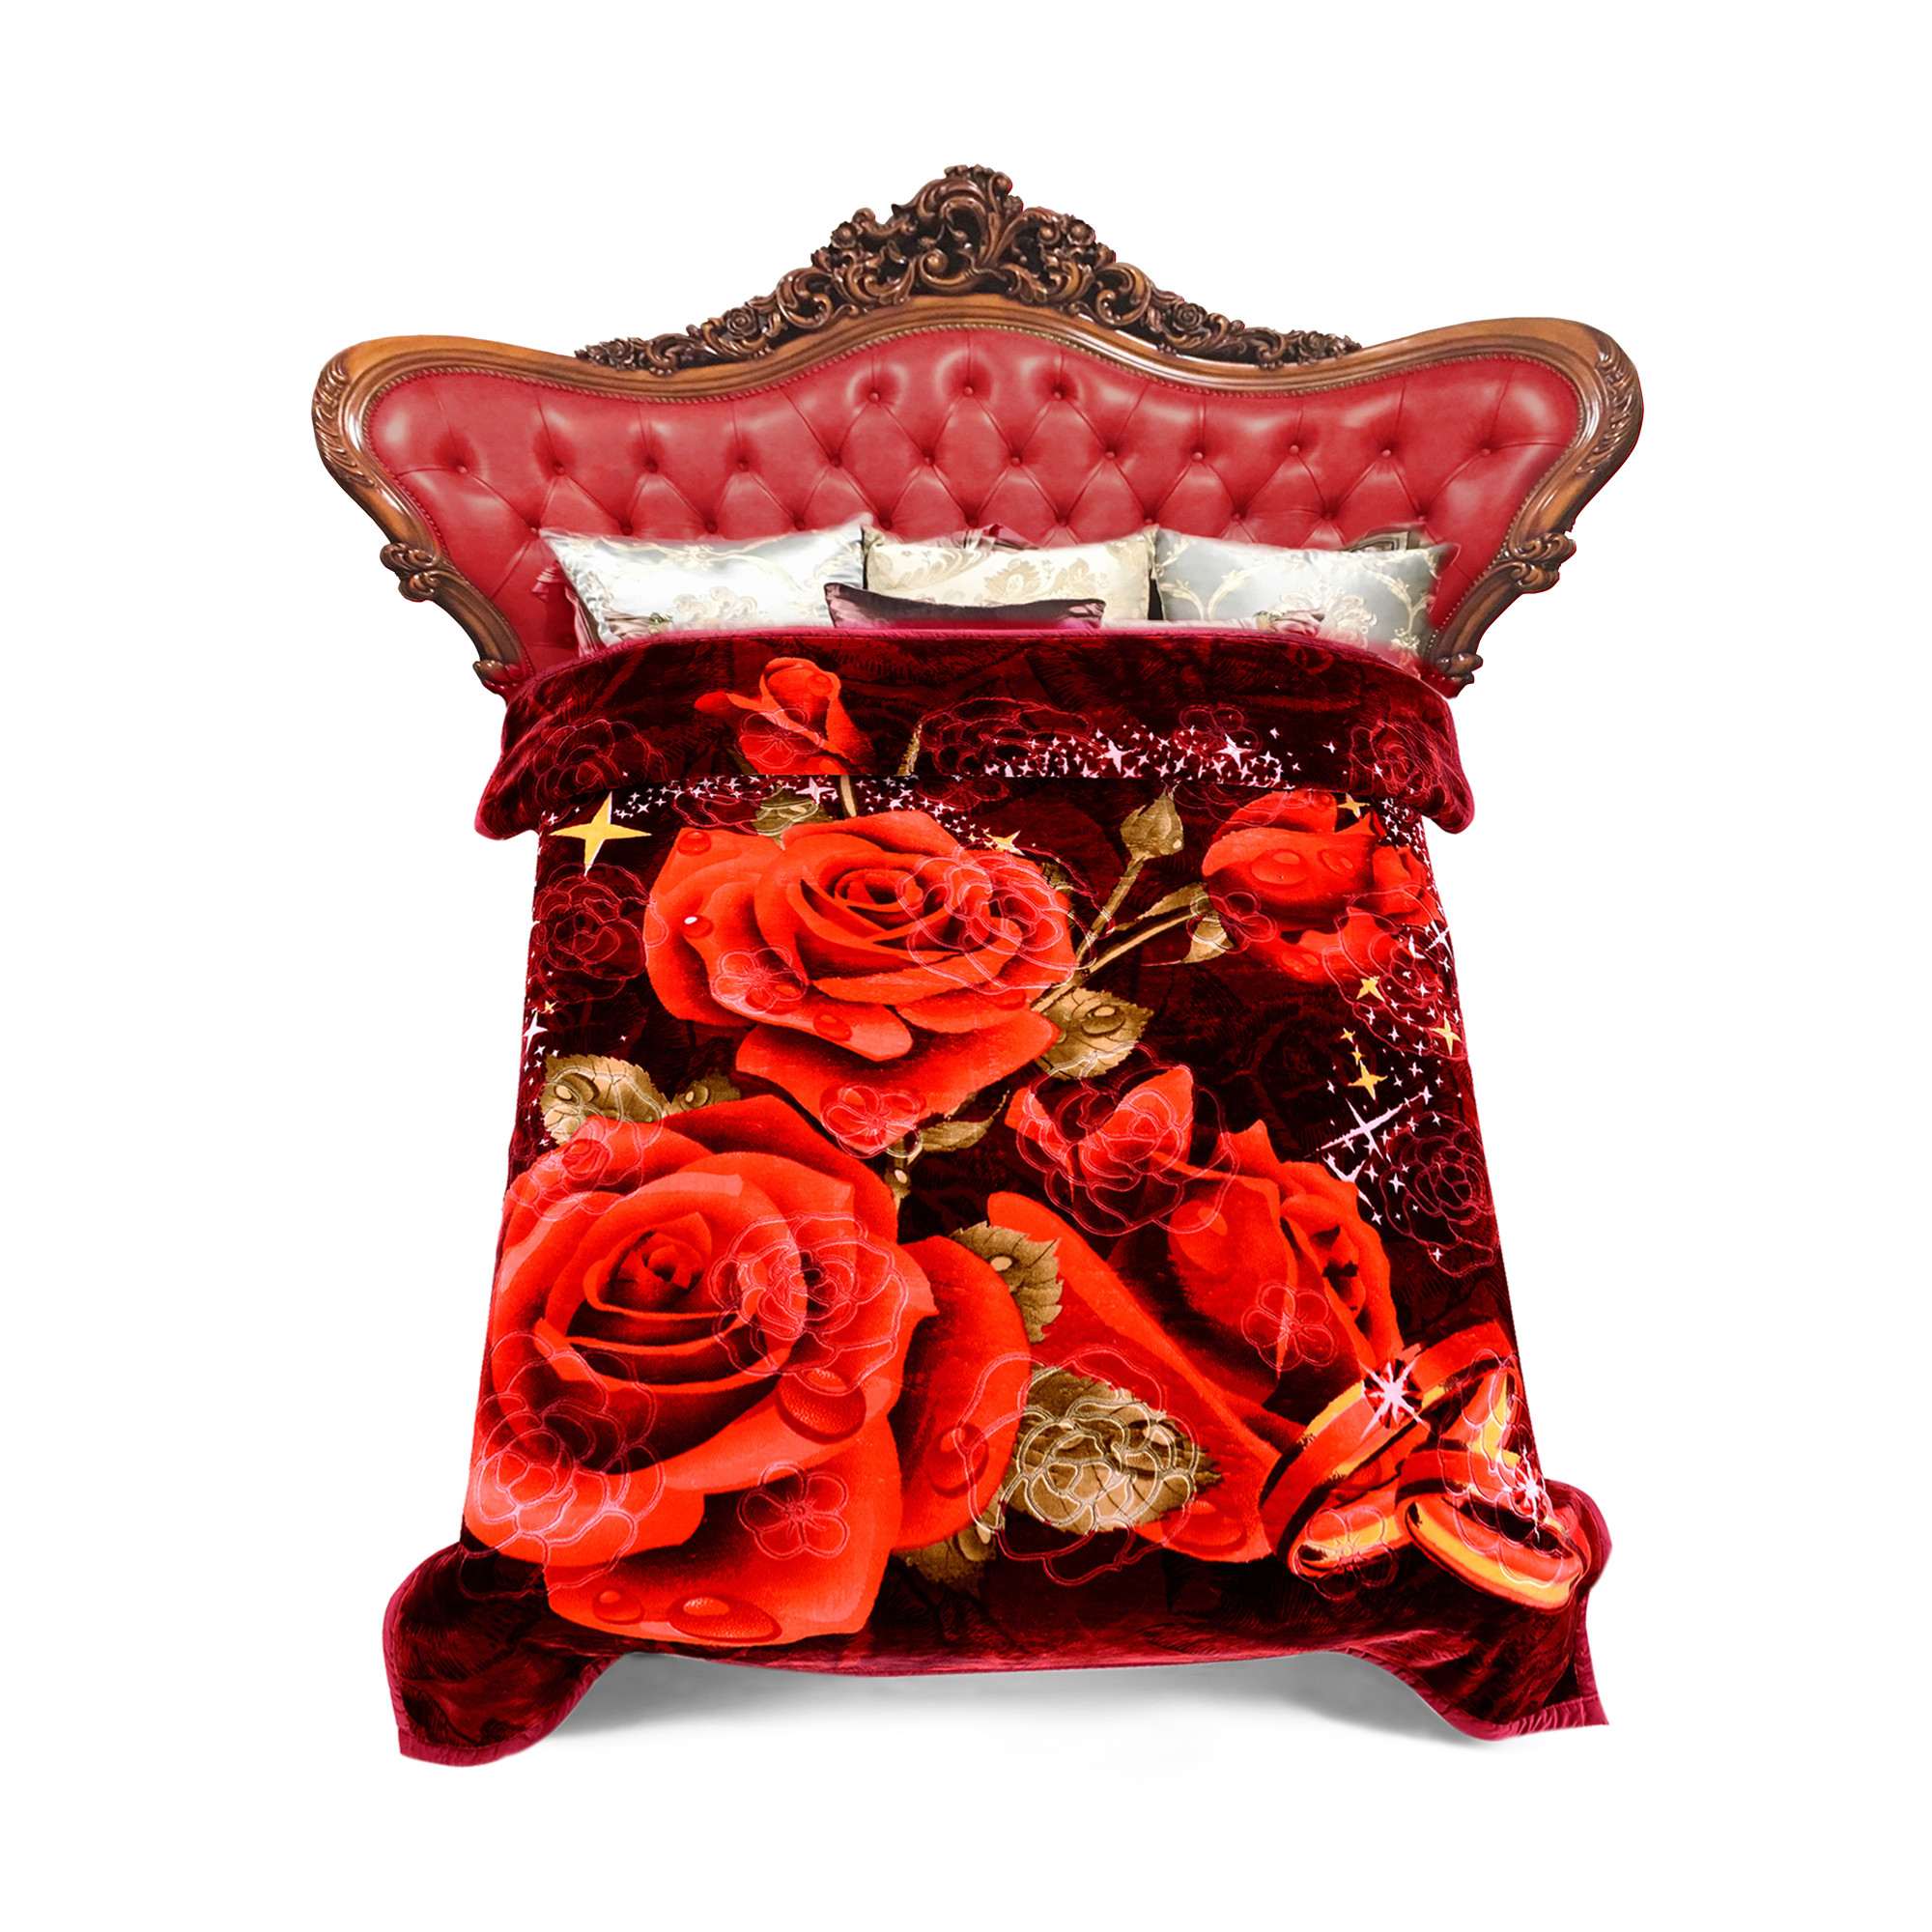 """Home Bedding Roses Pretty Printing & Embossed Double Ply Super Warm Soft Crystal Velvet 9 lb Heavy Thick Plush Mink Blanket For King Size Bed 85""""x95"""", Brown"""